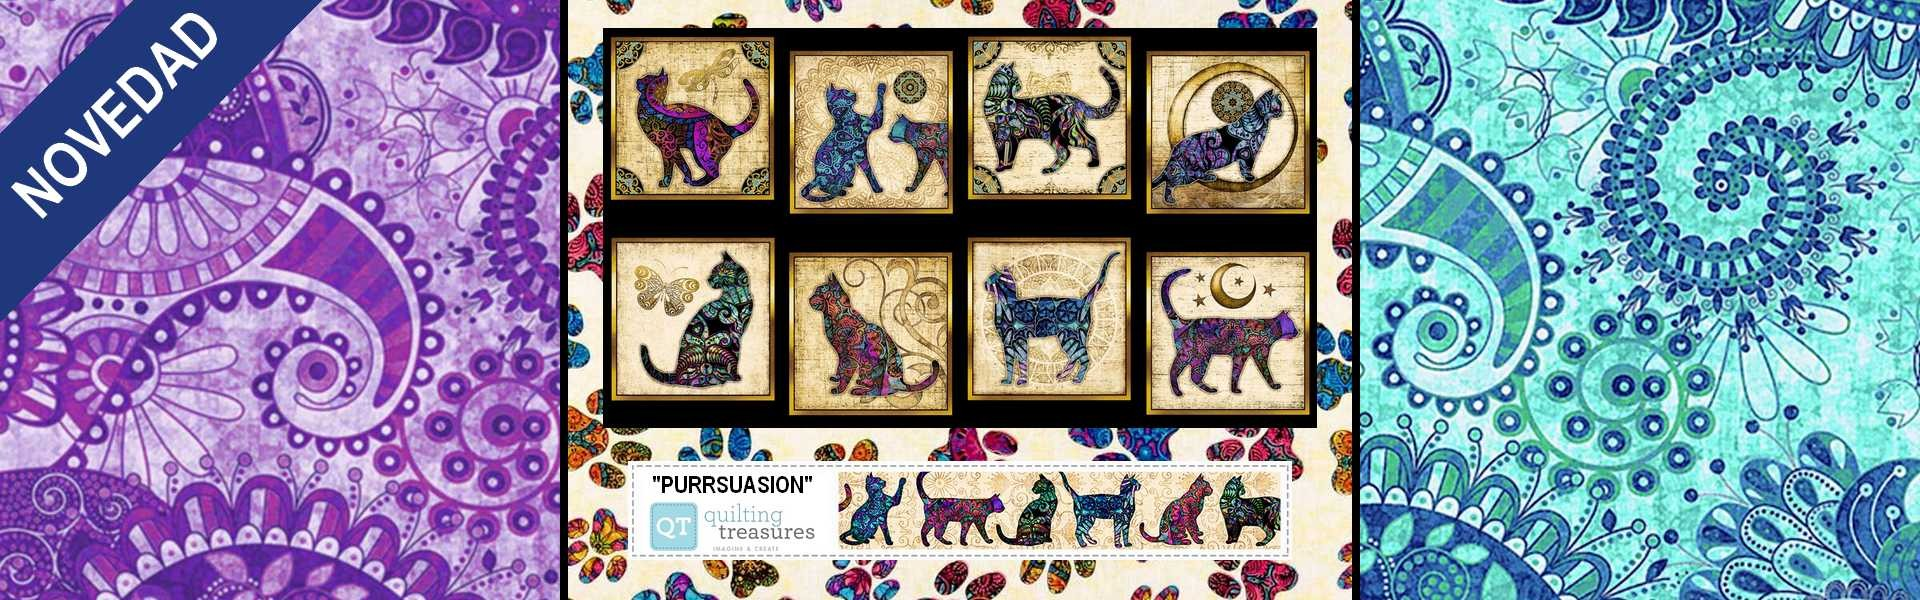 Purrsuasion de Quilting Treasures